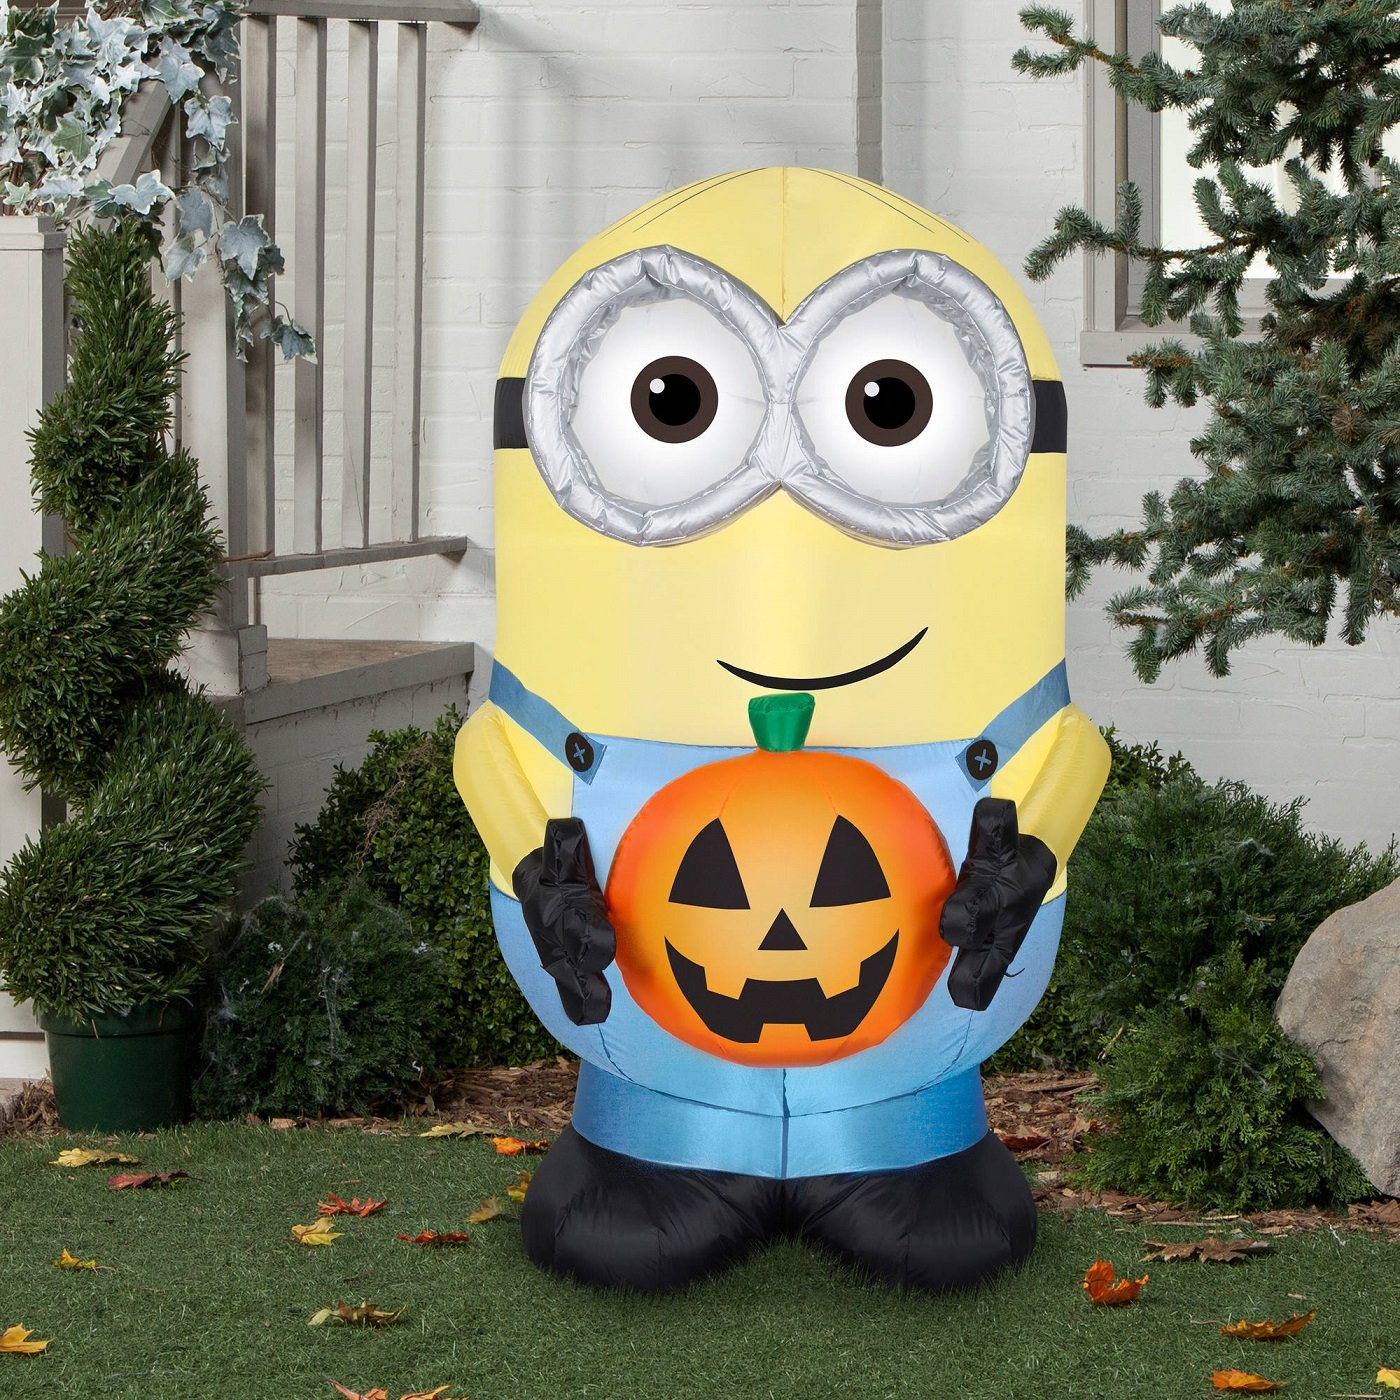 Halloween Inflatable Minion Dave Holding Pumpkin By Gemmy 2